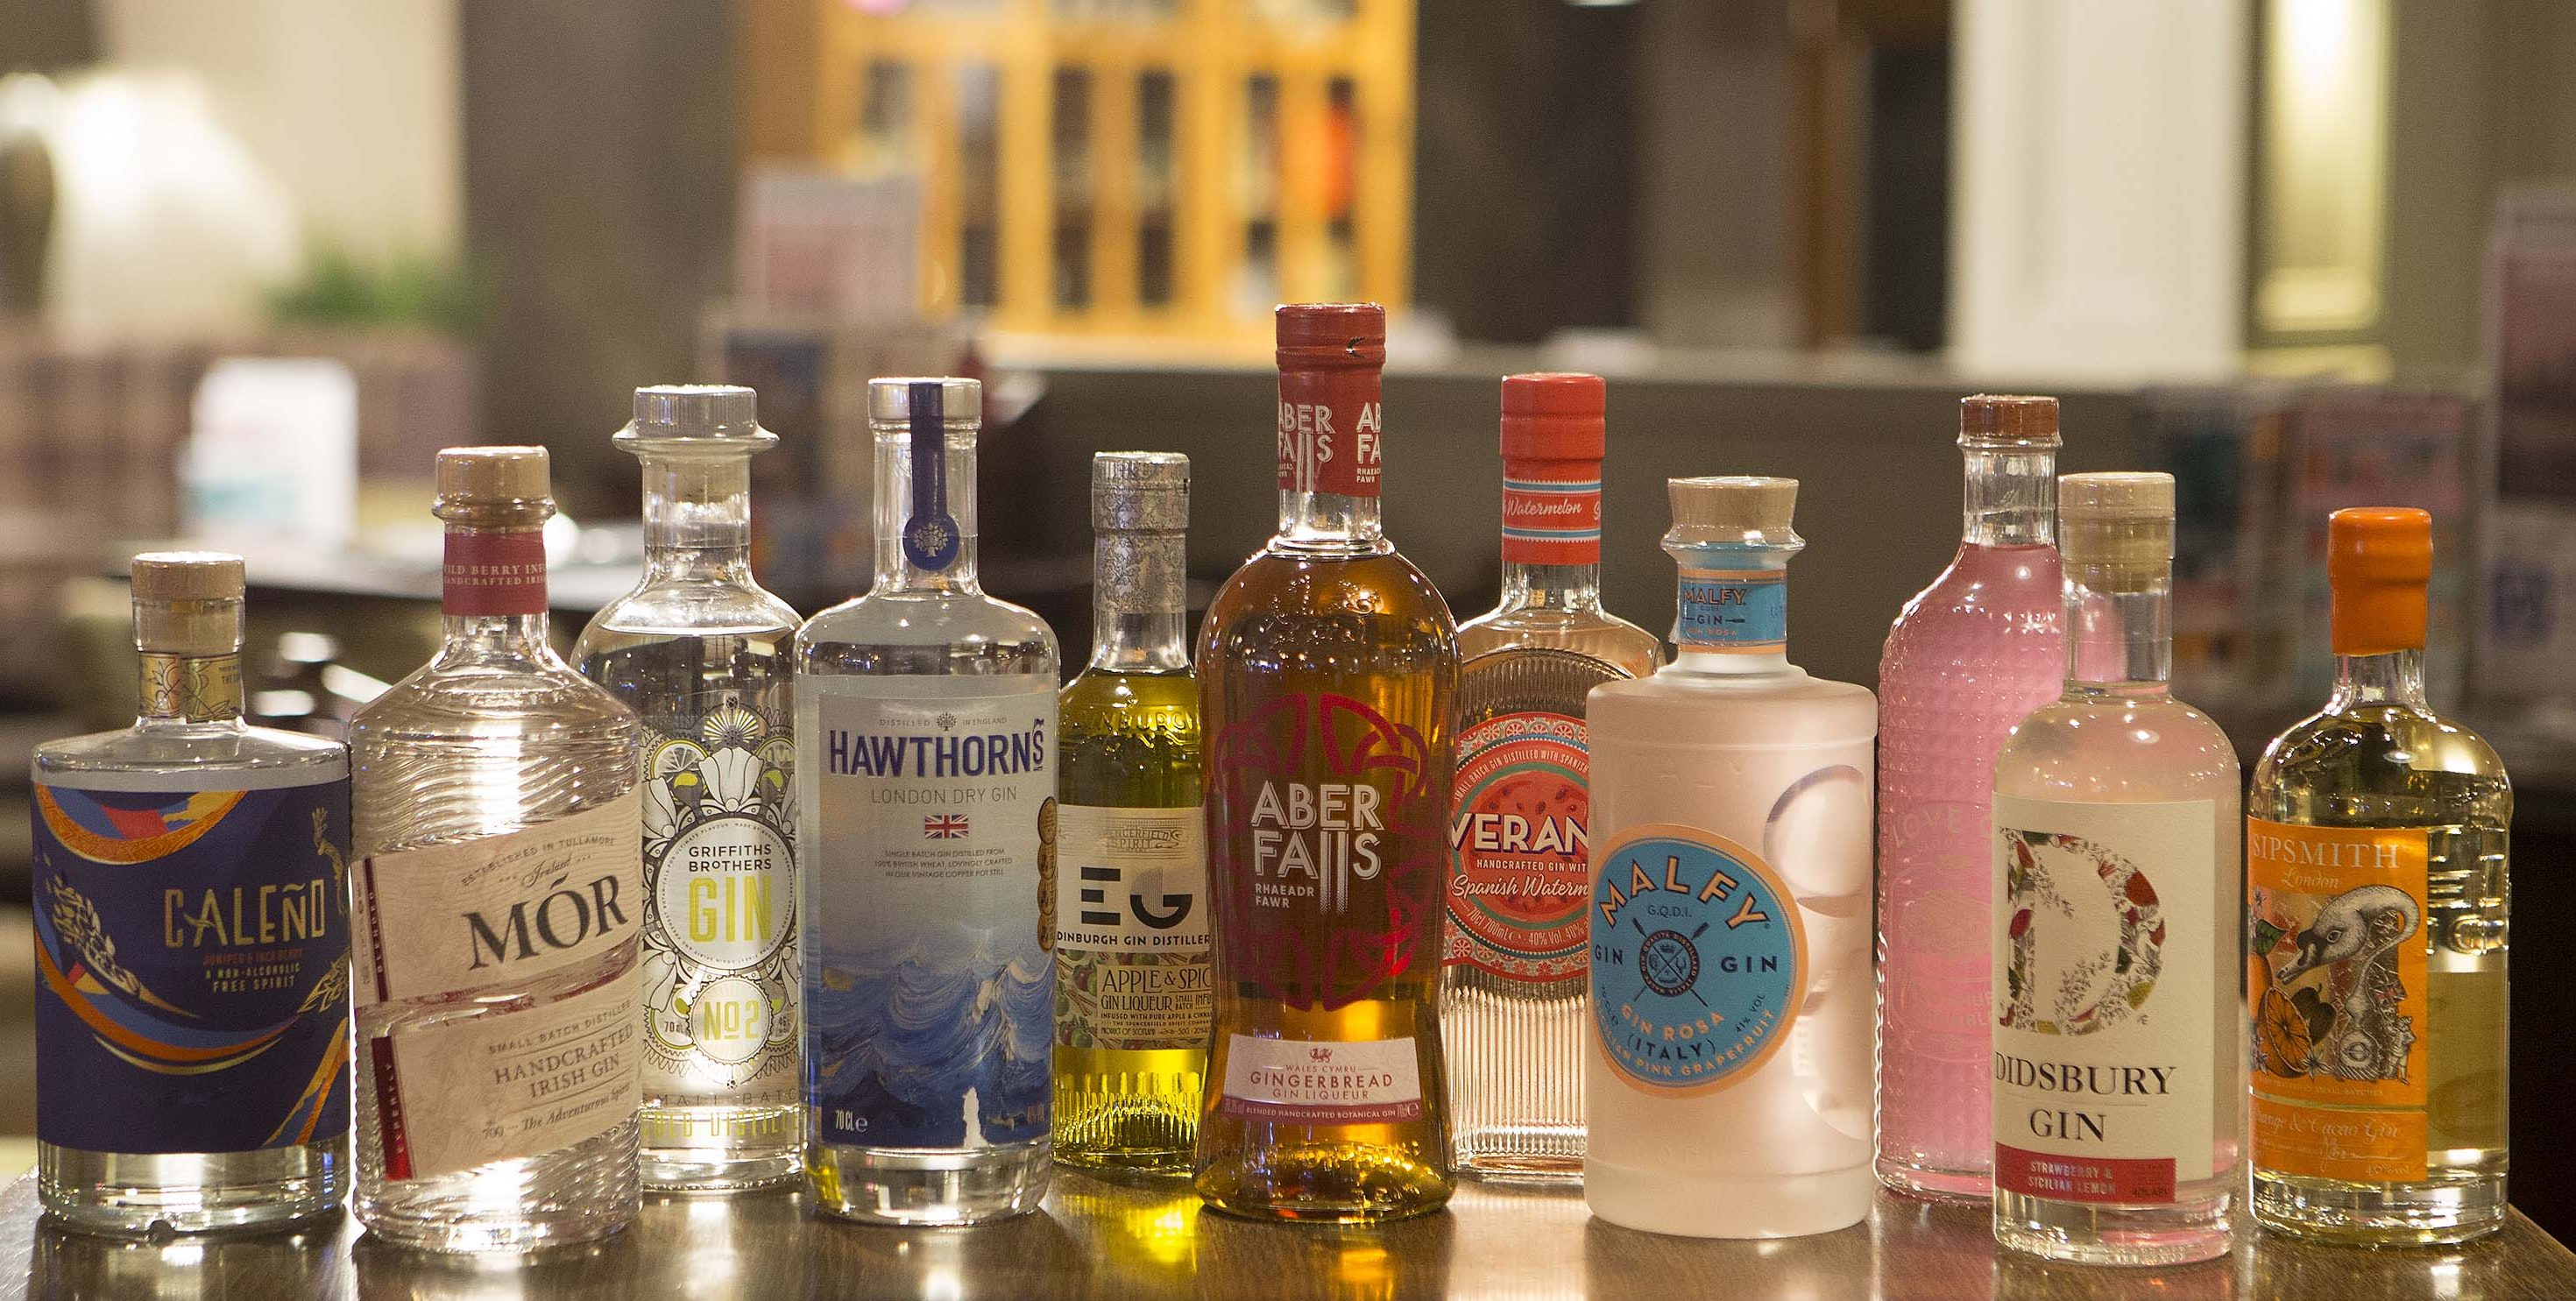 Wetherspoons is hosting a 17-day nationwide gin festival this February